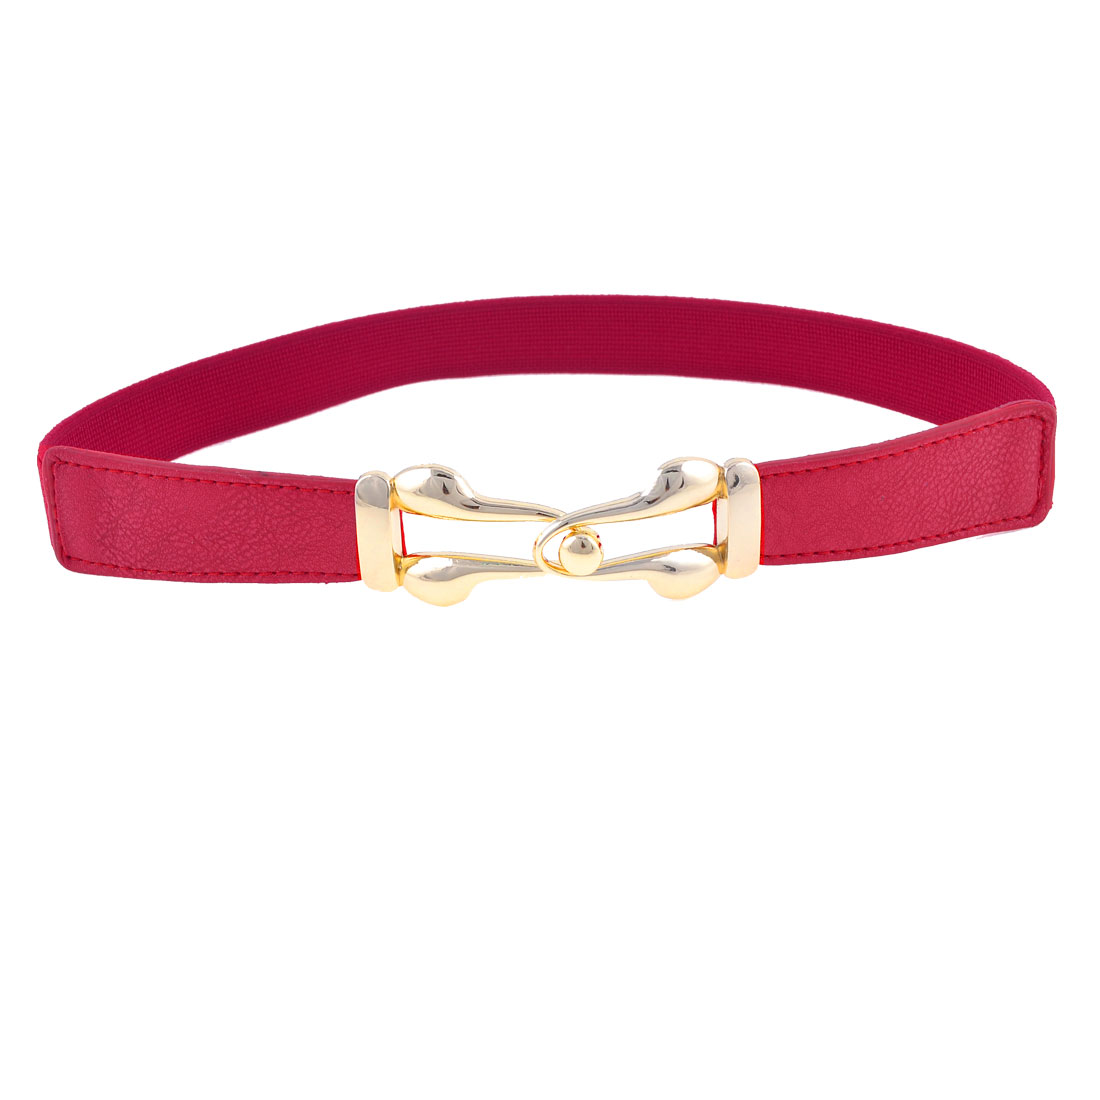 Women 2.5cm Width Gold Tone Interlock Buckle Dark Red Stretchy Waist Belt Band